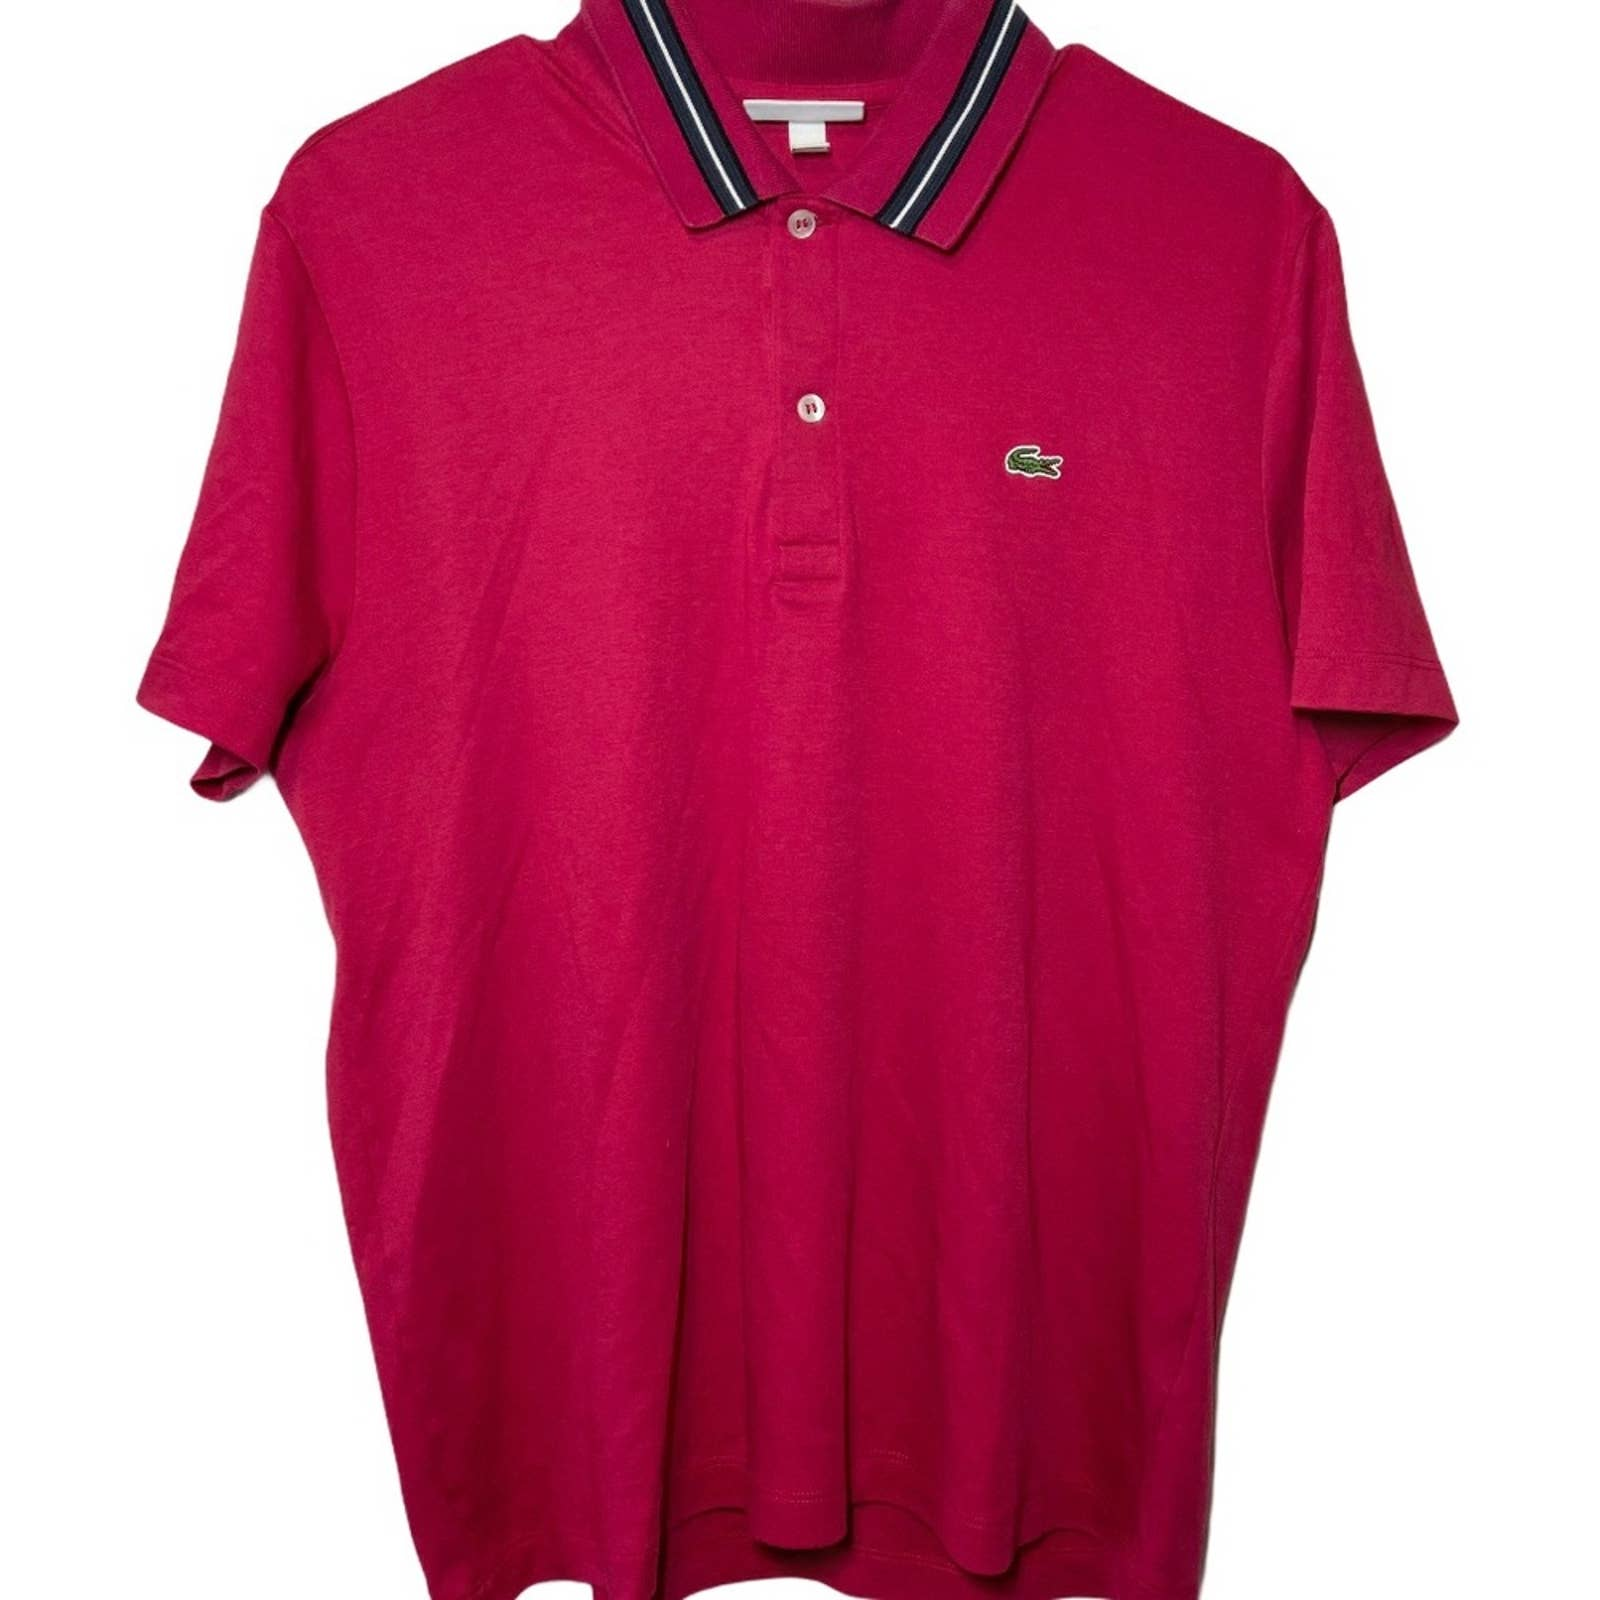 Product Image 1 - Lacoste Polo Men's Classic Fit